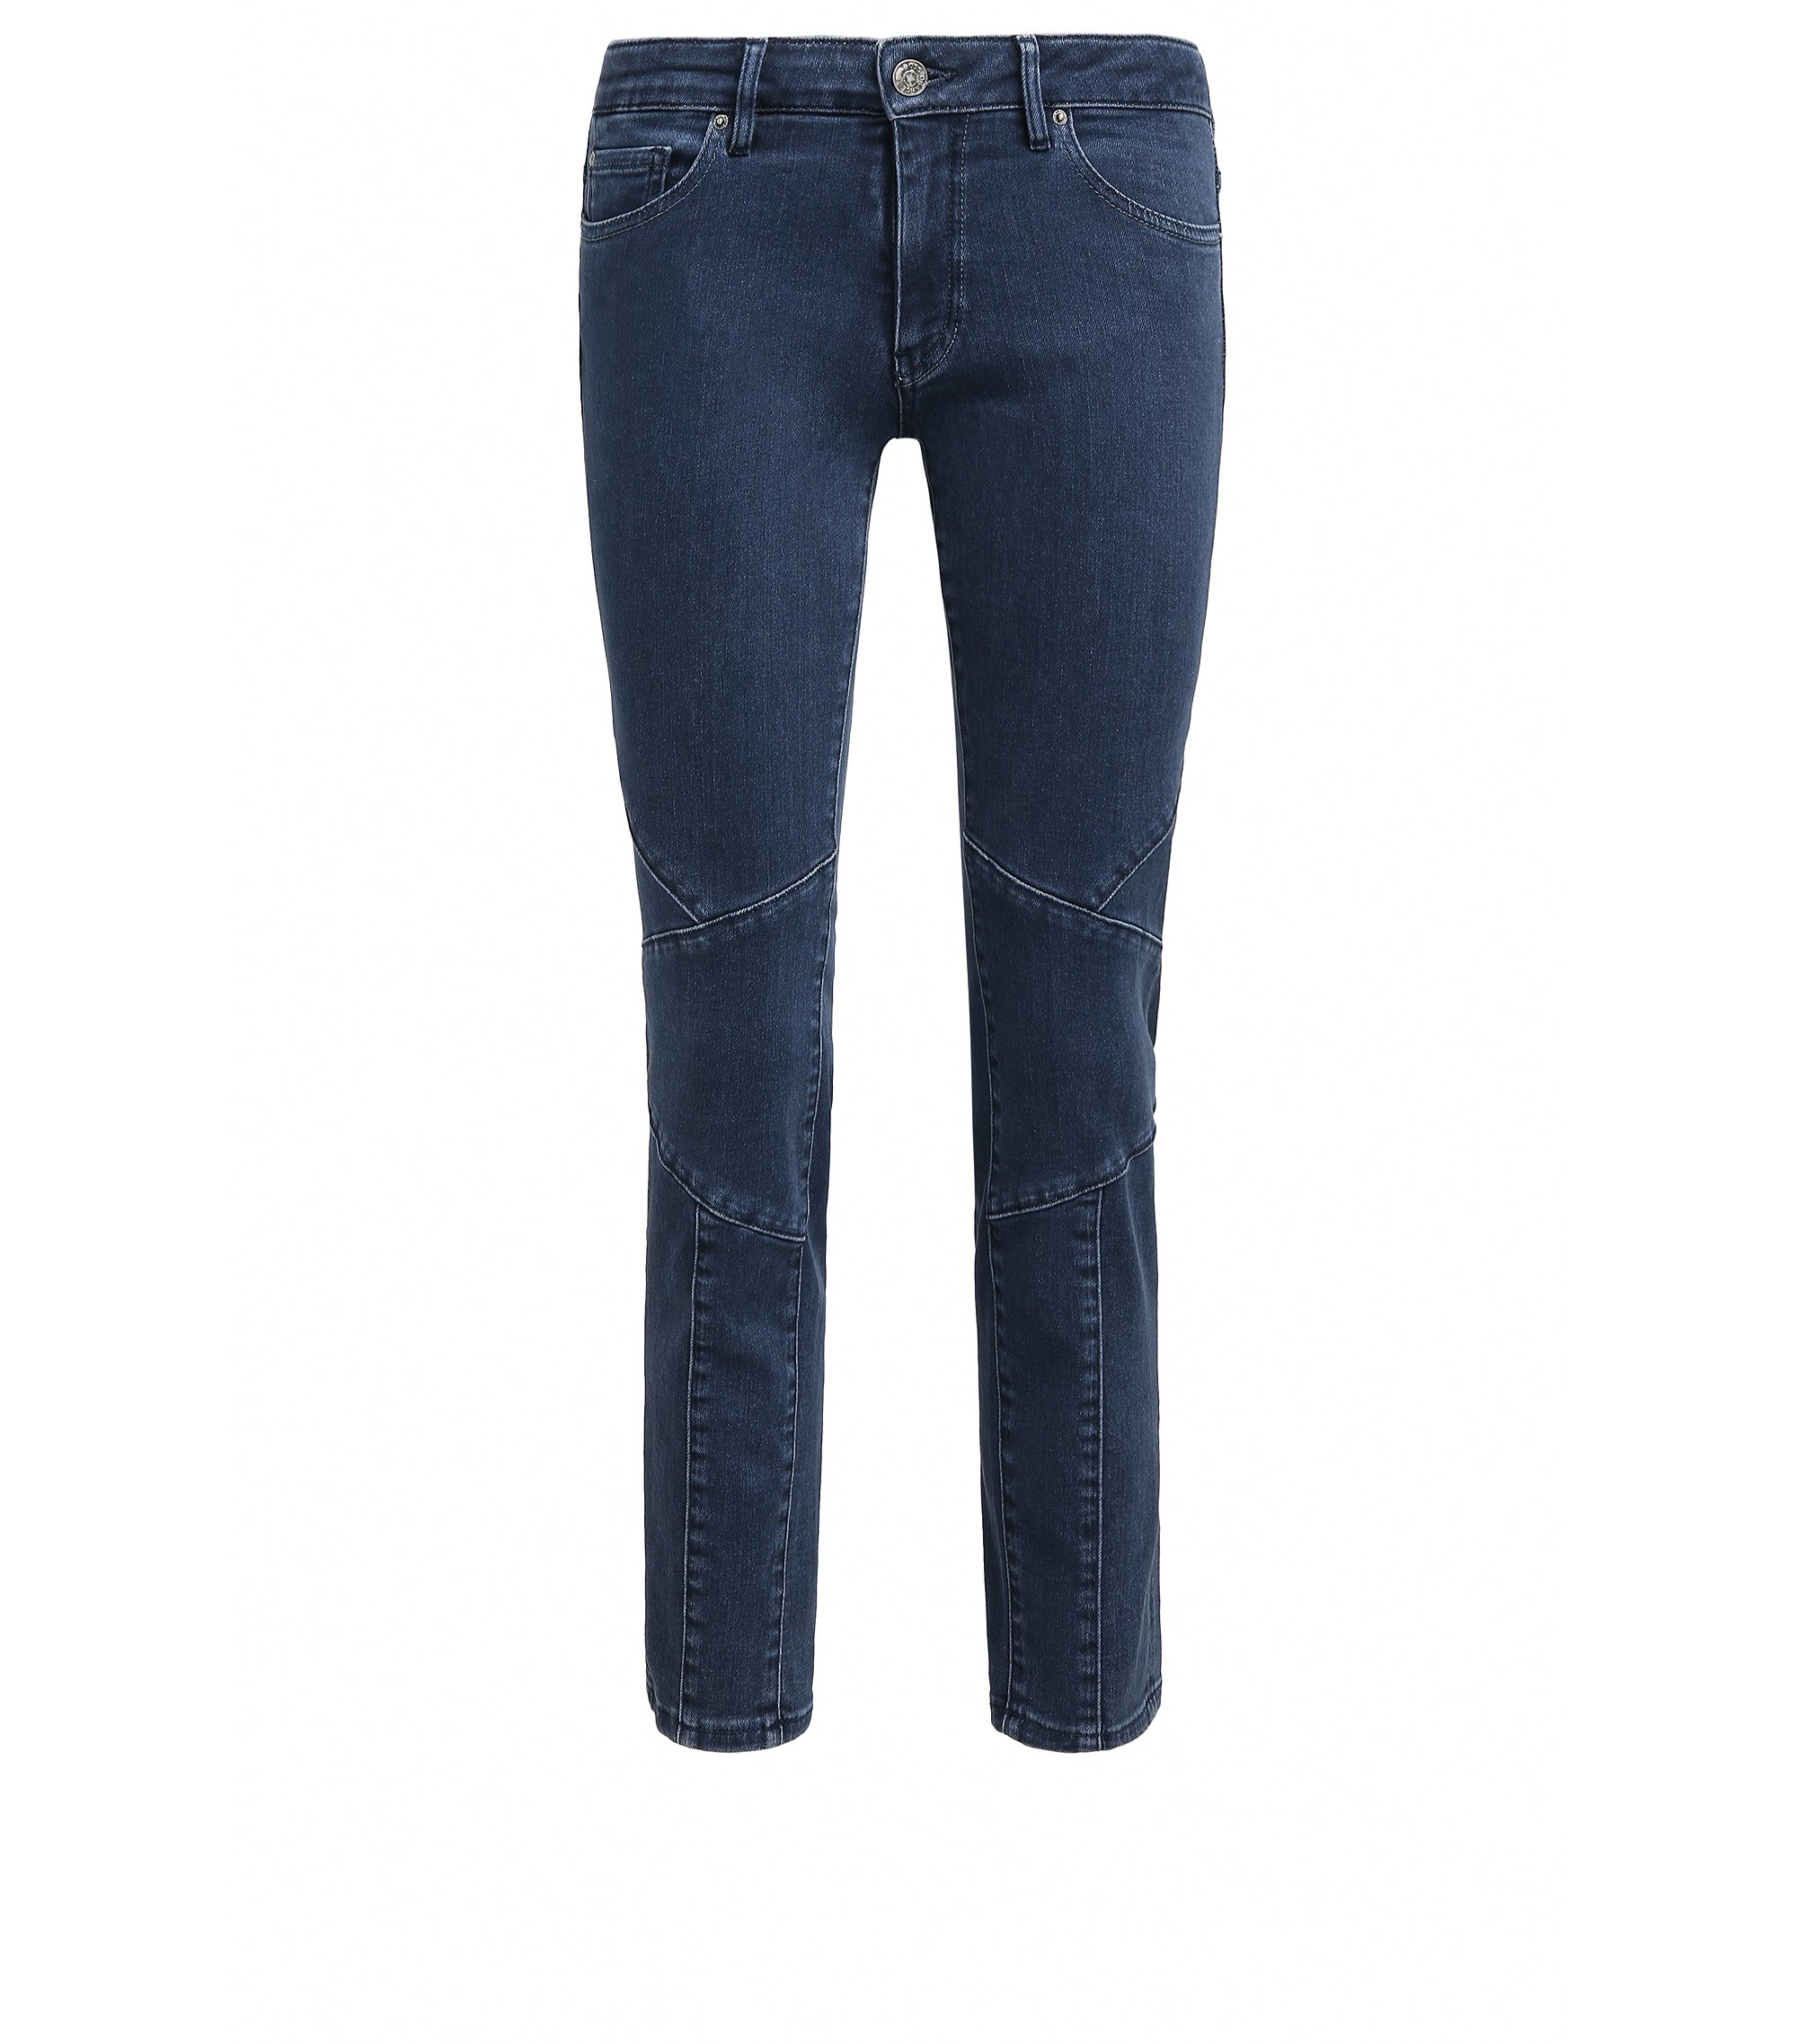 Jeans Slim Fit raccourci en denim power-stretch, au style biker, Bleu